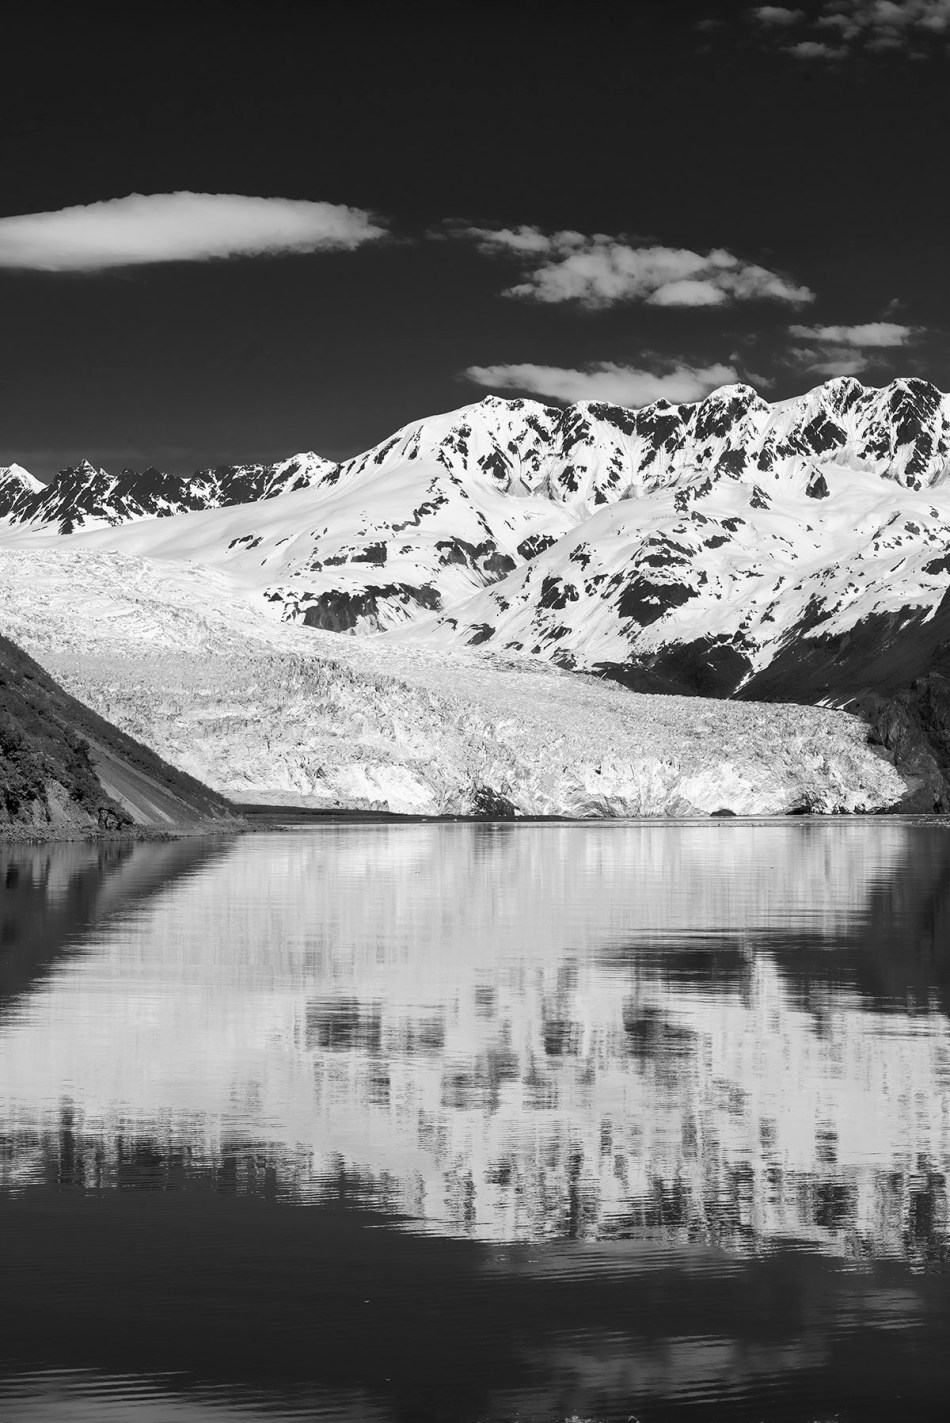 Approaching the Aialik Glacier and reflection.